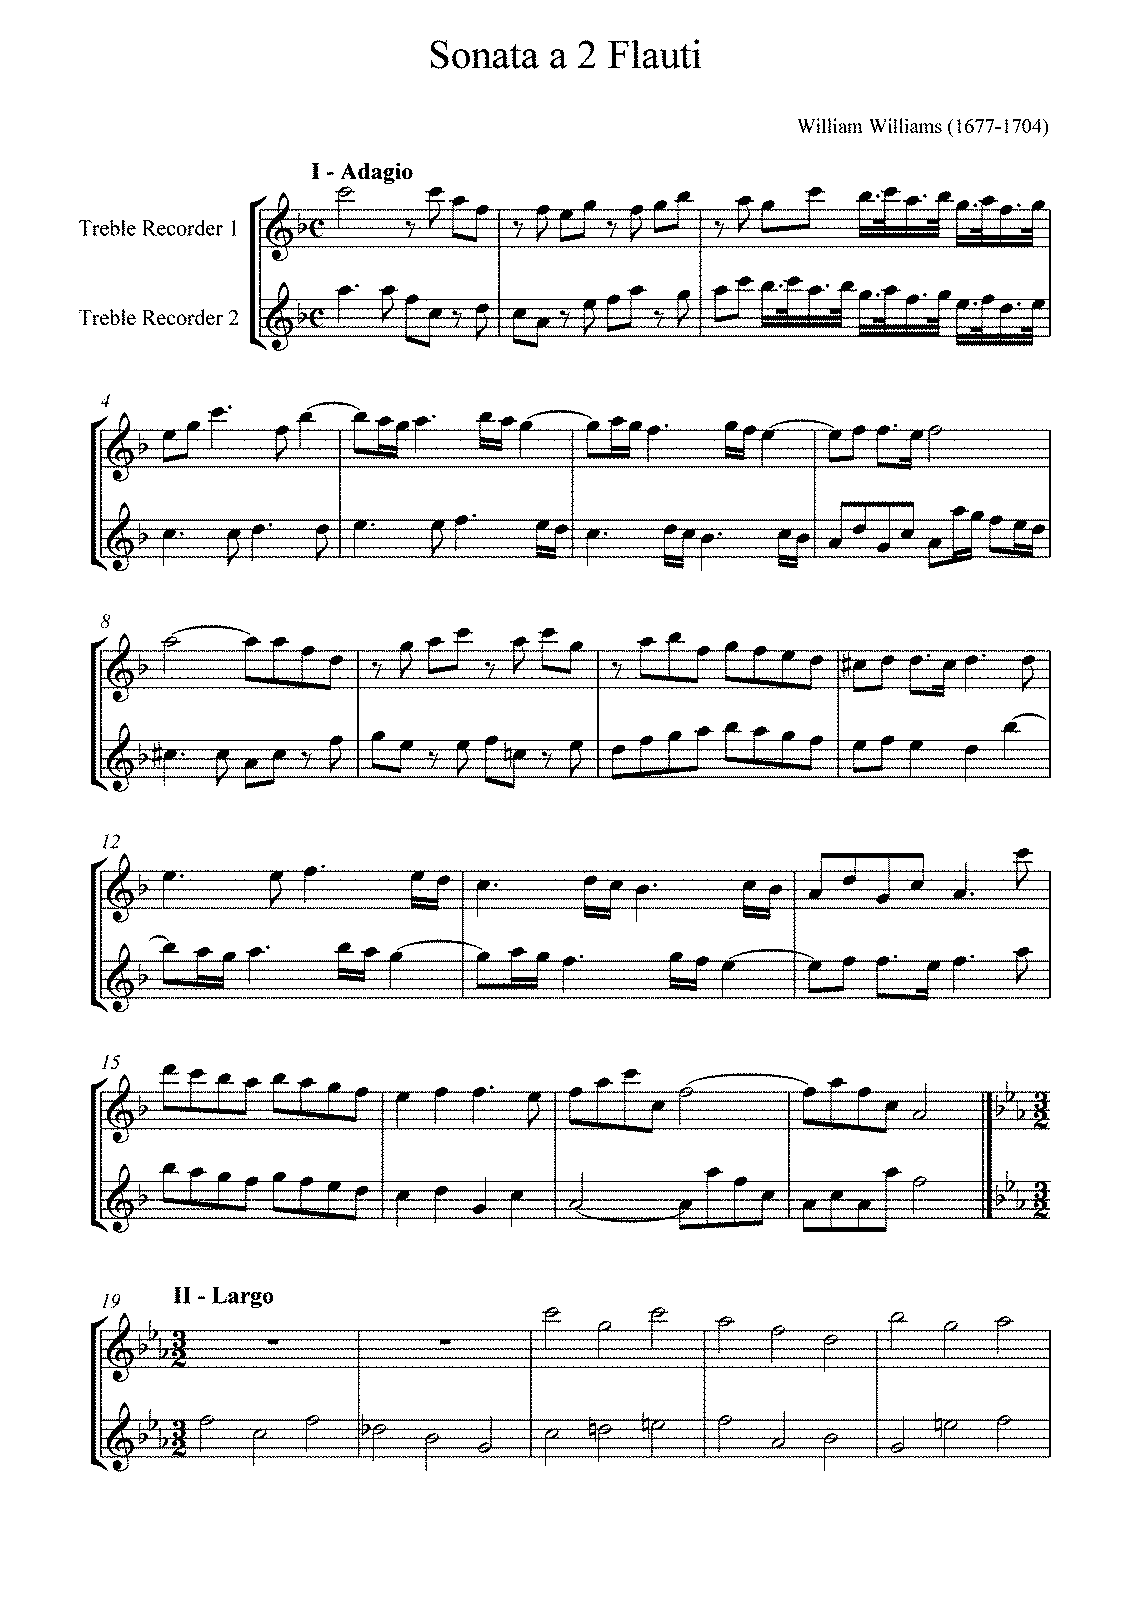 WIMA.9c42-Williams-Sonata-for-Flutes-Score.pdf